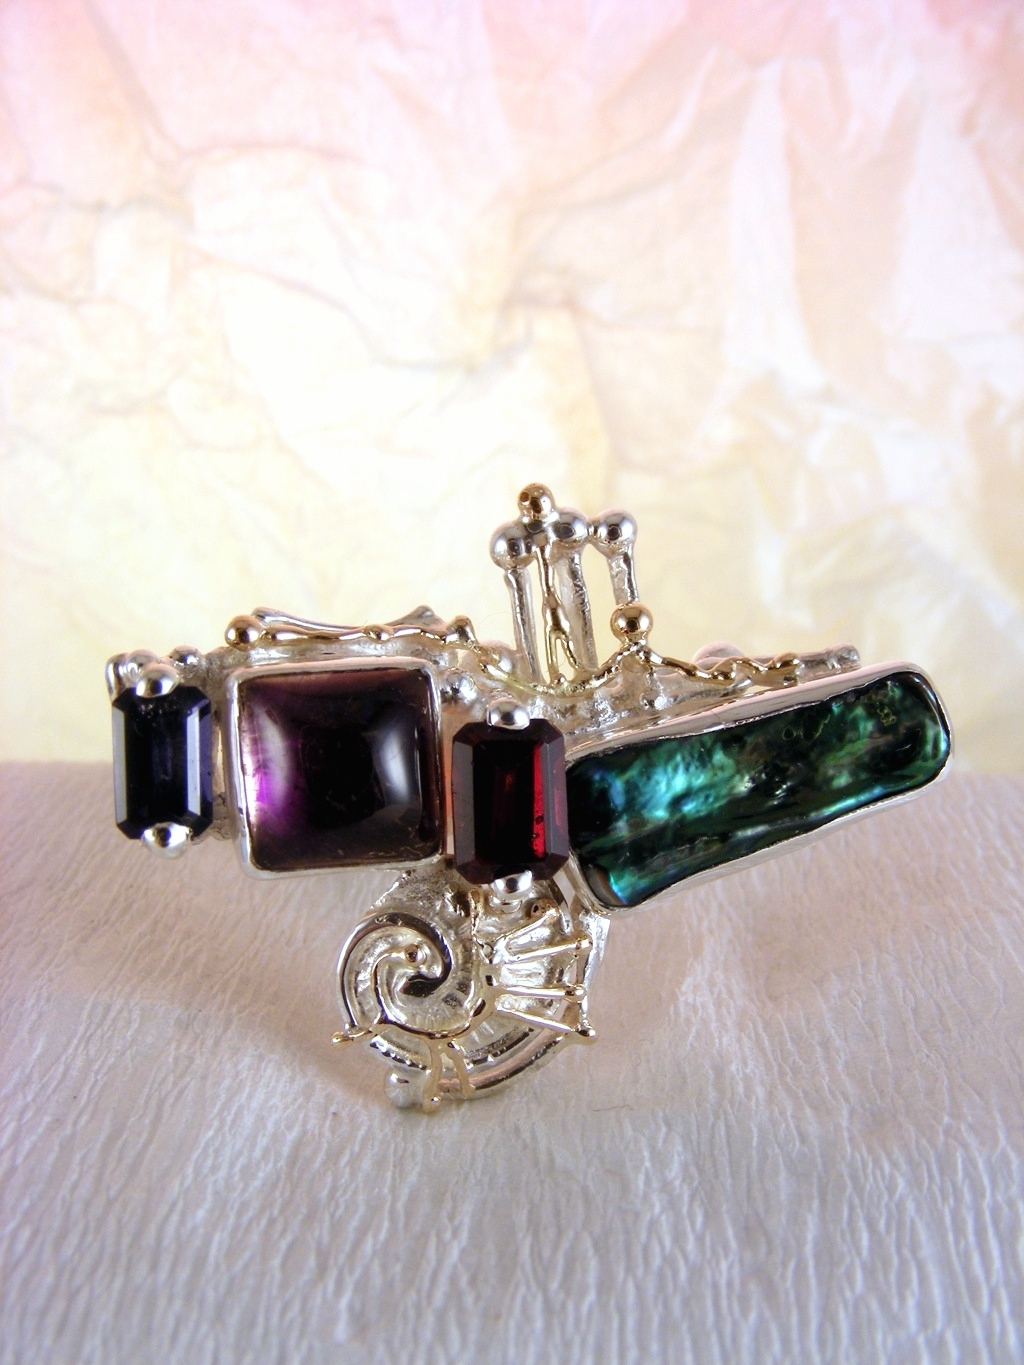 One of a Kind Gregory Pyra Piro Square Ring in Sterling Silver and 14 Karat Gold with Amethyst, Garnet, Iolite, and Pearl